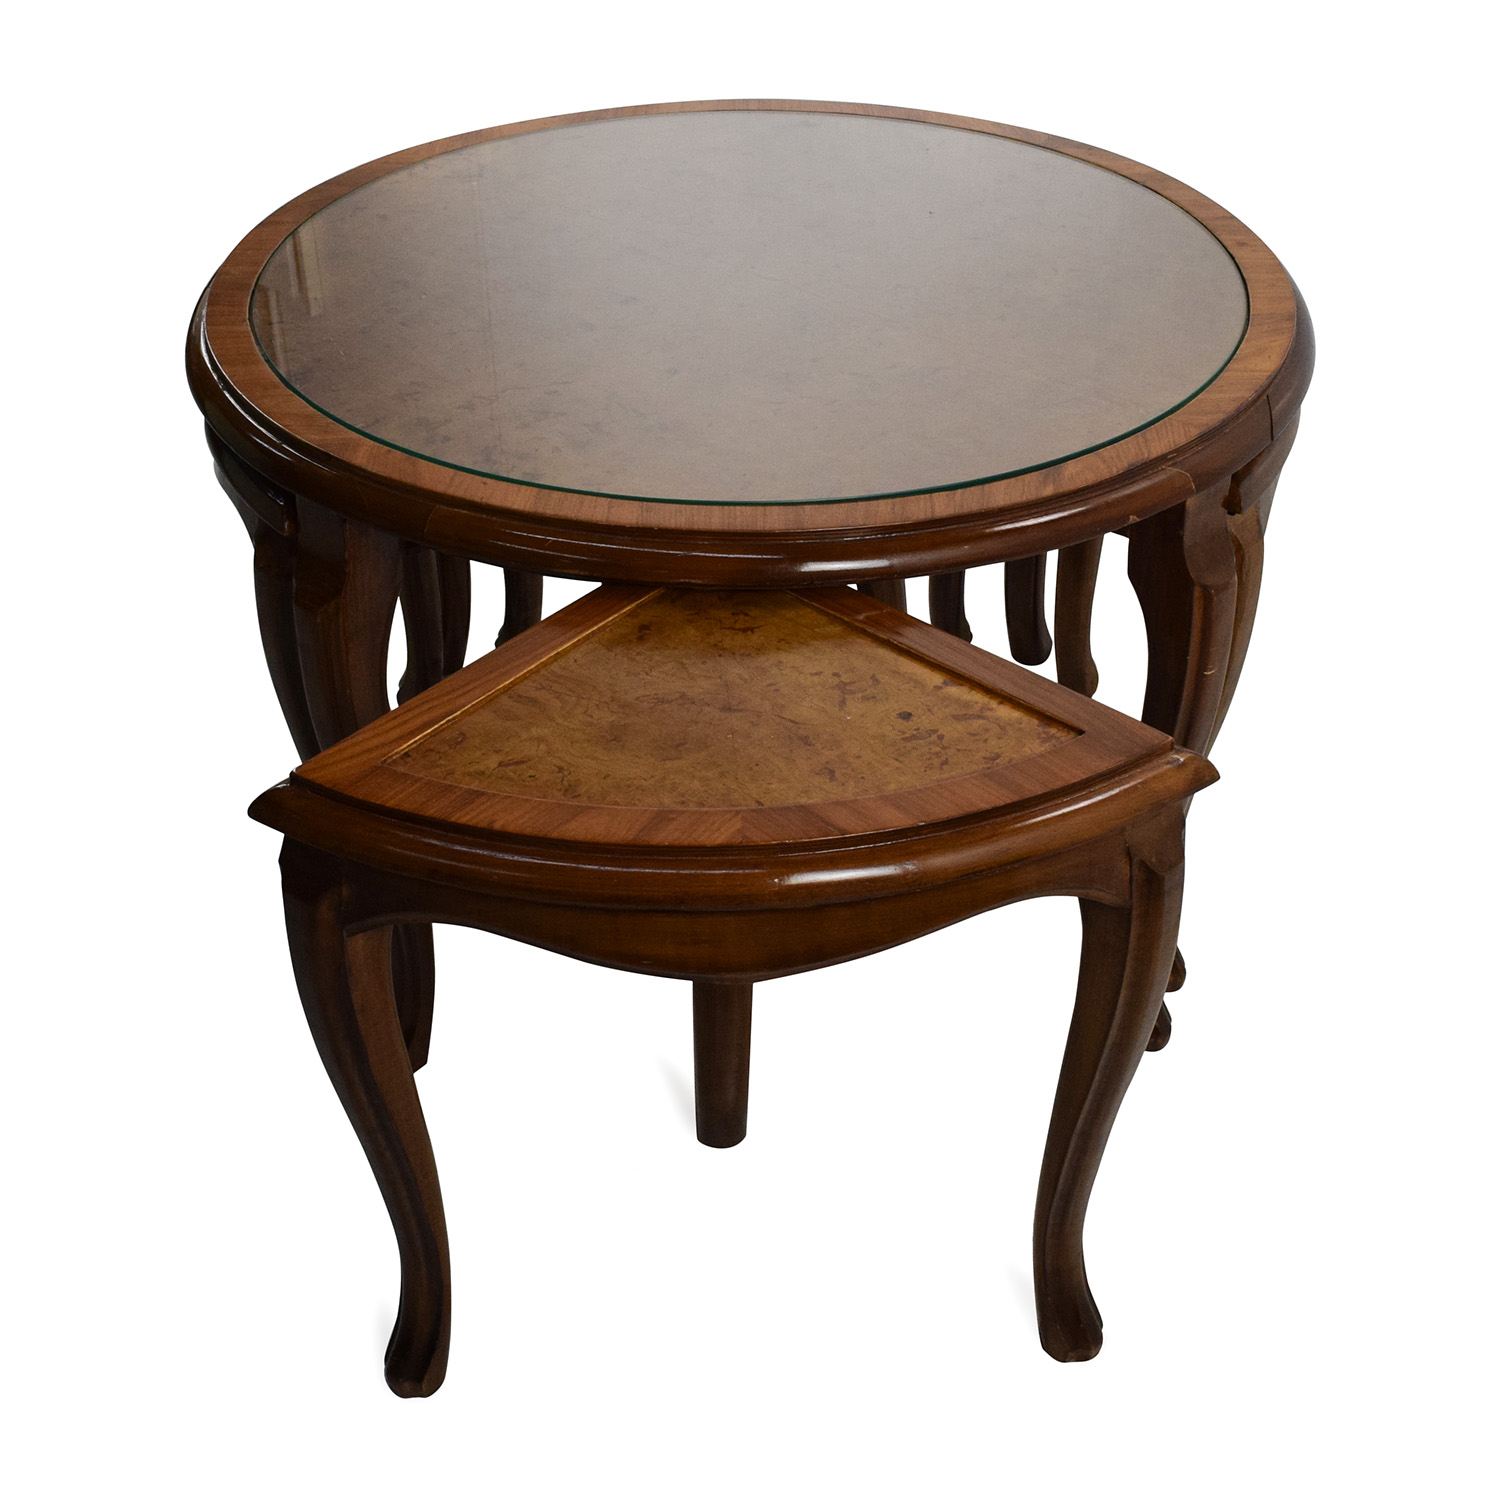 buy Round Glass Top Coffee Table with 4 Nesting Stools Coffee Tables